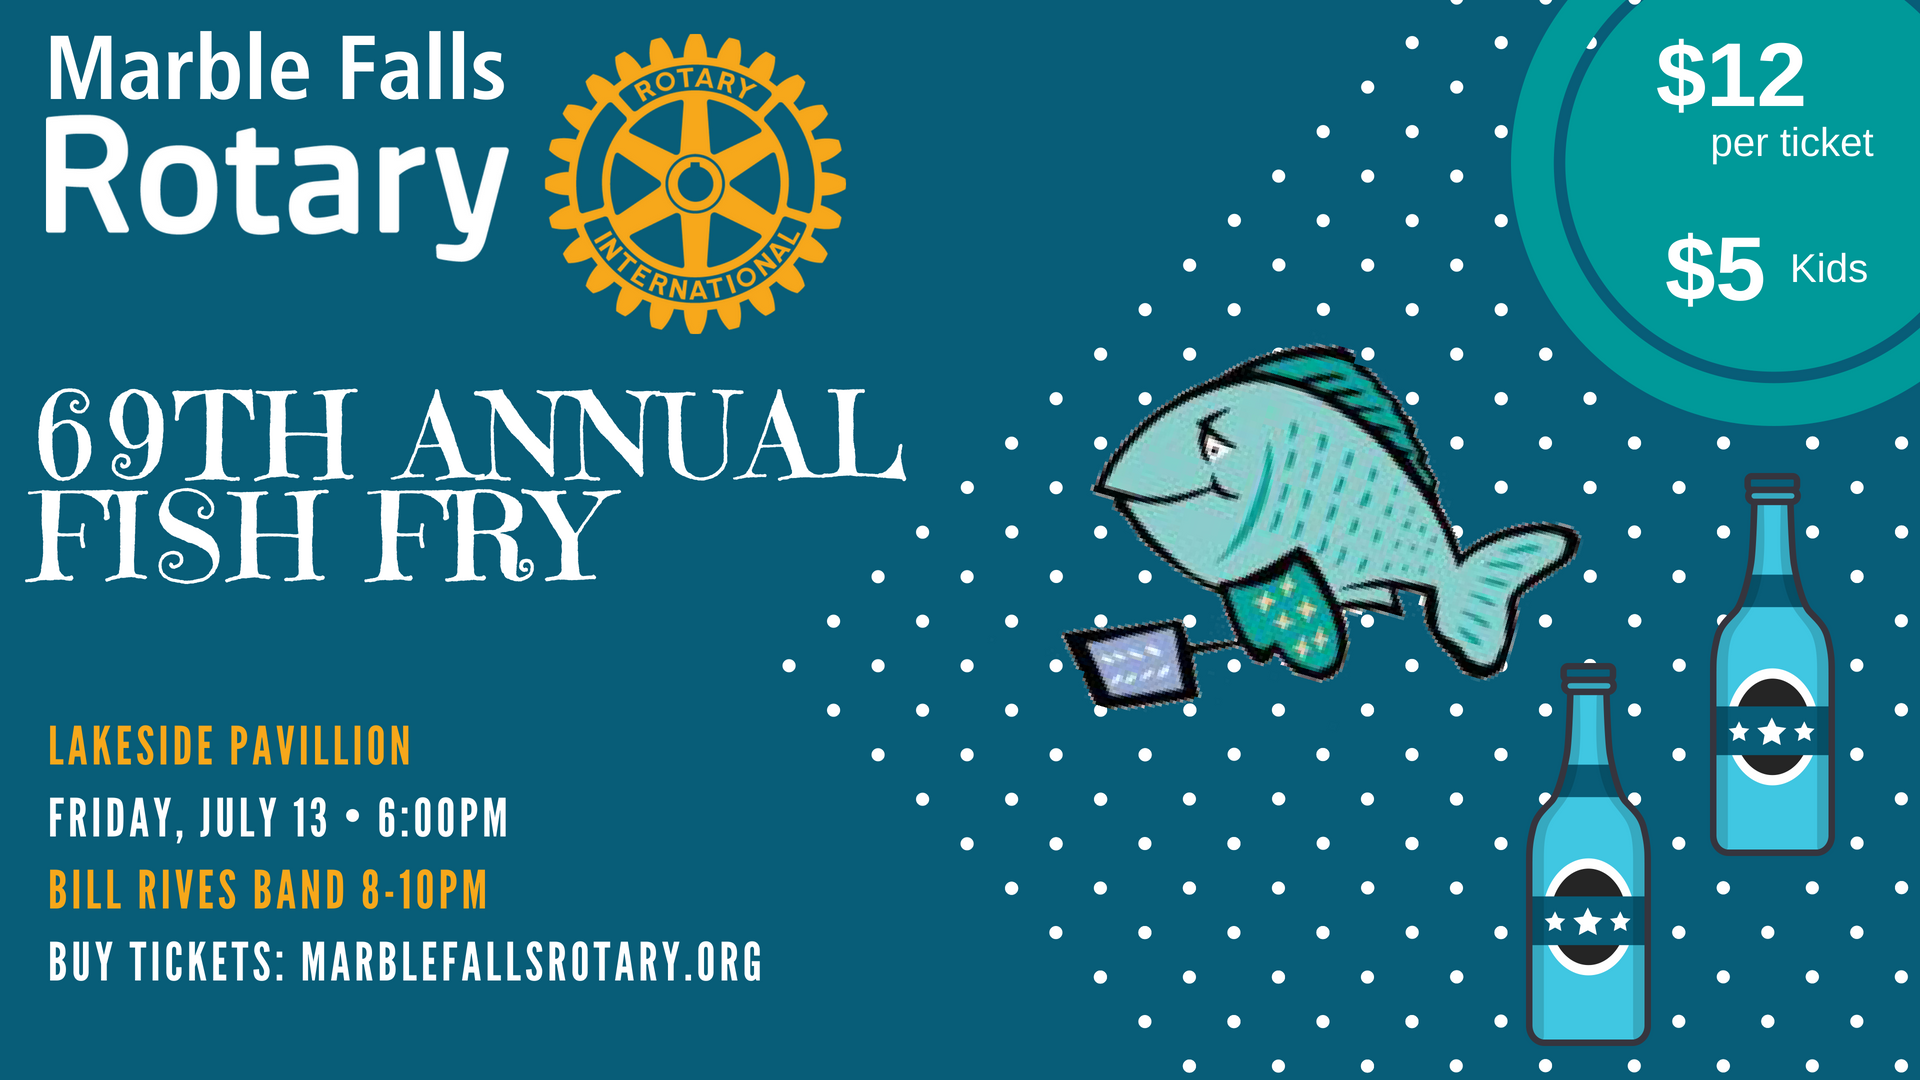 san francisco 465cb f6ba5 You re invited to the 69th Annual Marble Falls Fish Fry on Friday, July  13th at the Lakeside Pavilion! This event is open to all Rotarians and  their ...